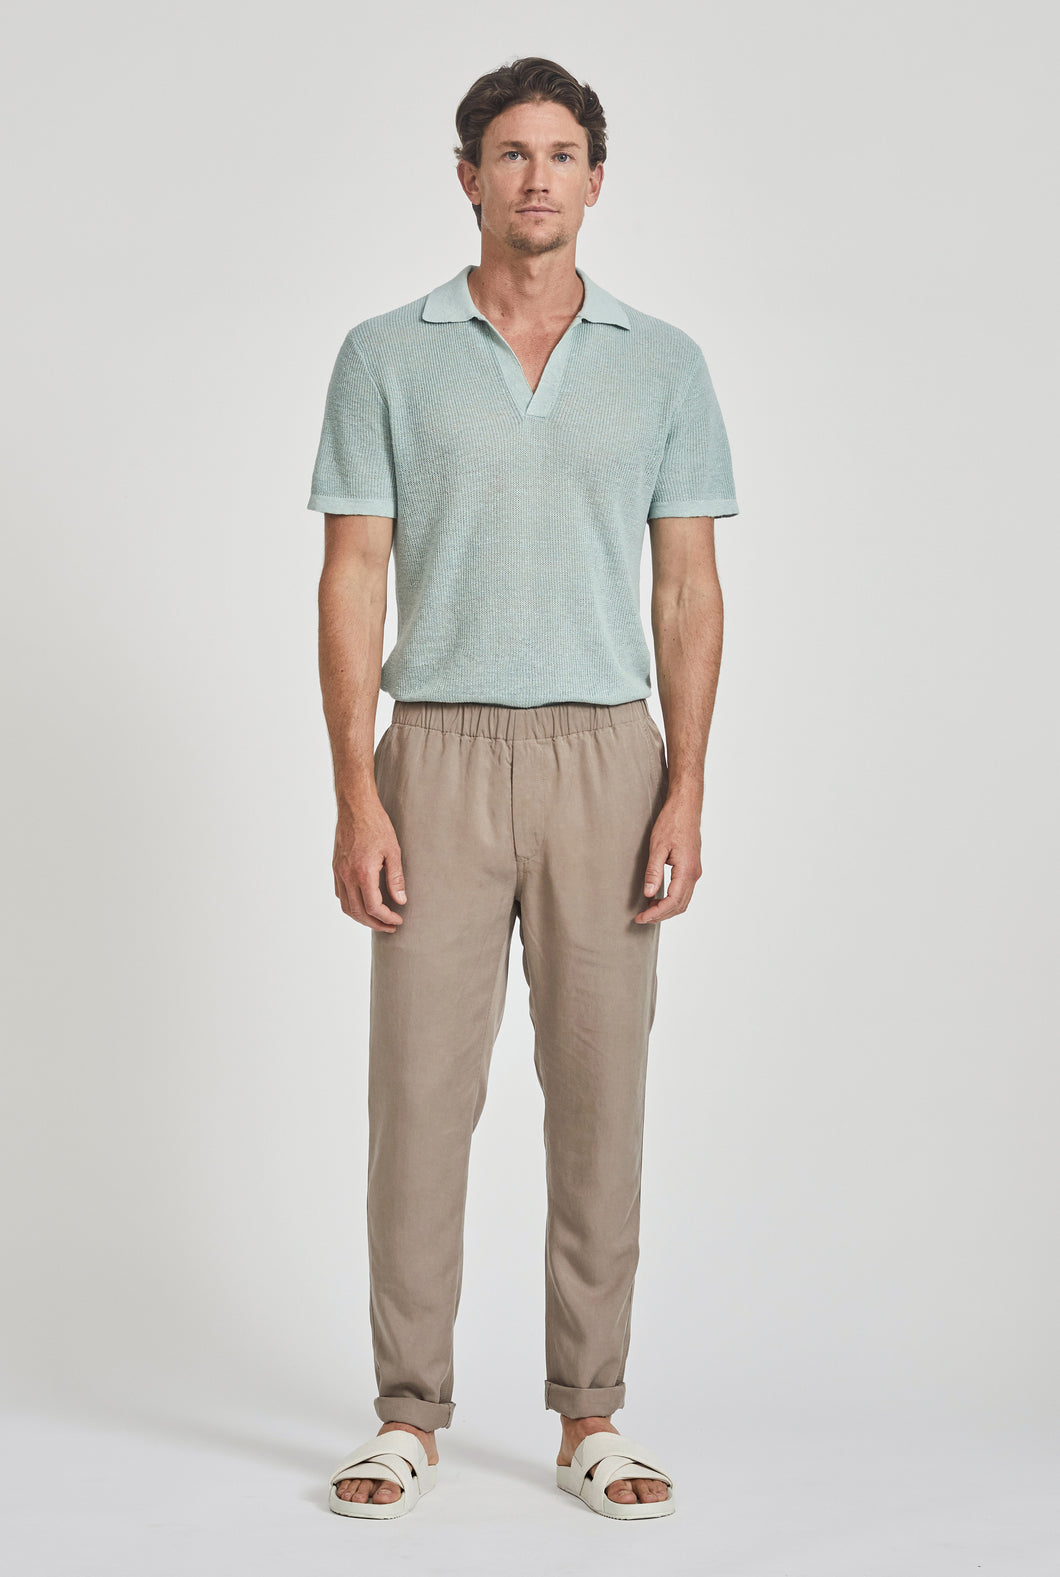 Tencel Lounge Chino - Putty